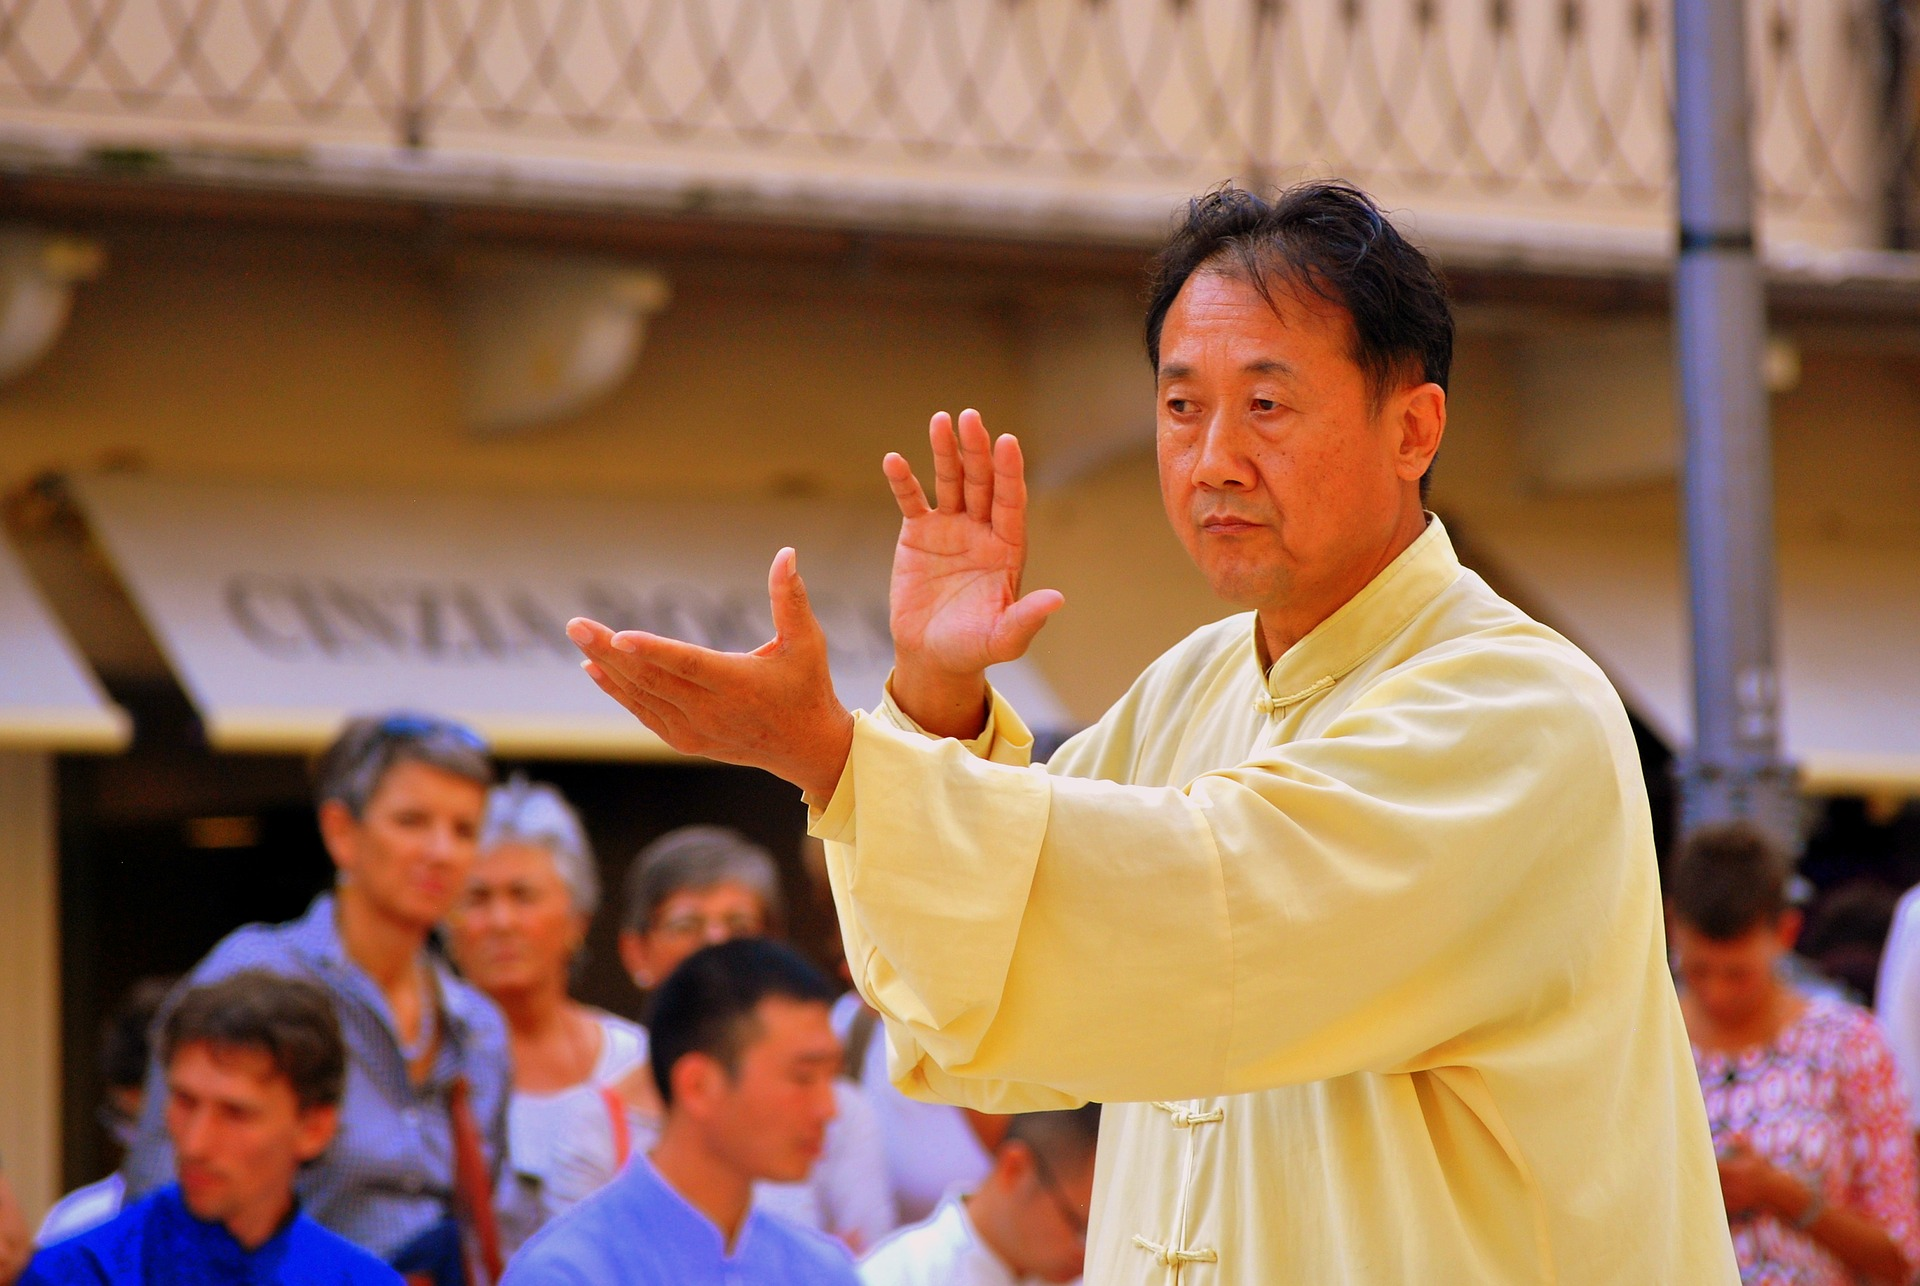 Qi Gong | What is it? & How You Can Start Practicing Today